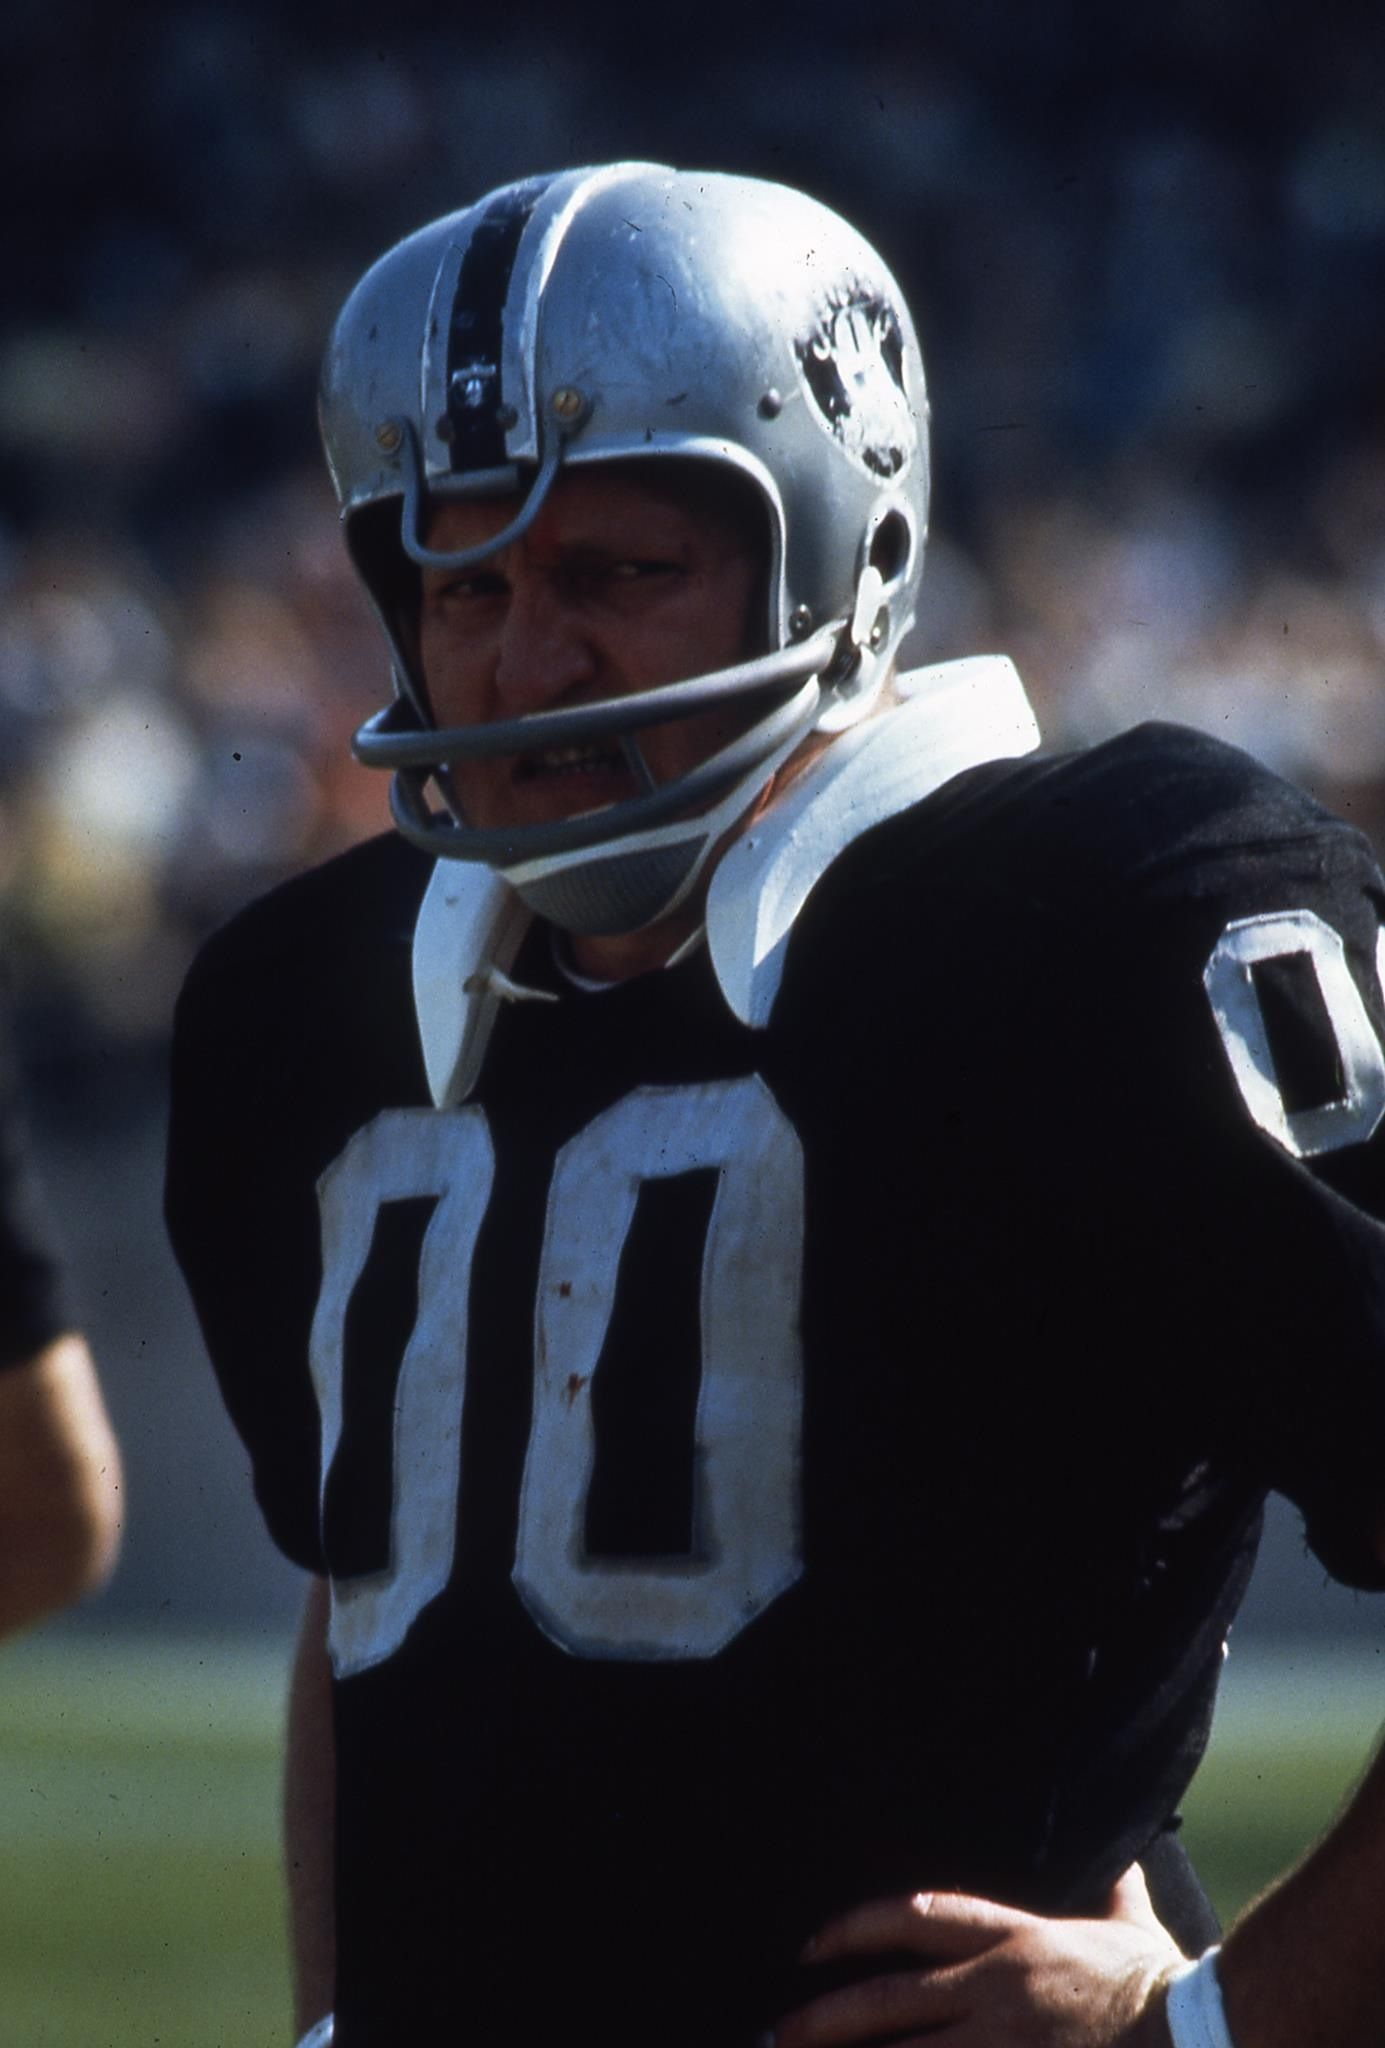 The Autumn Wind is a Raider Oakland raiders images